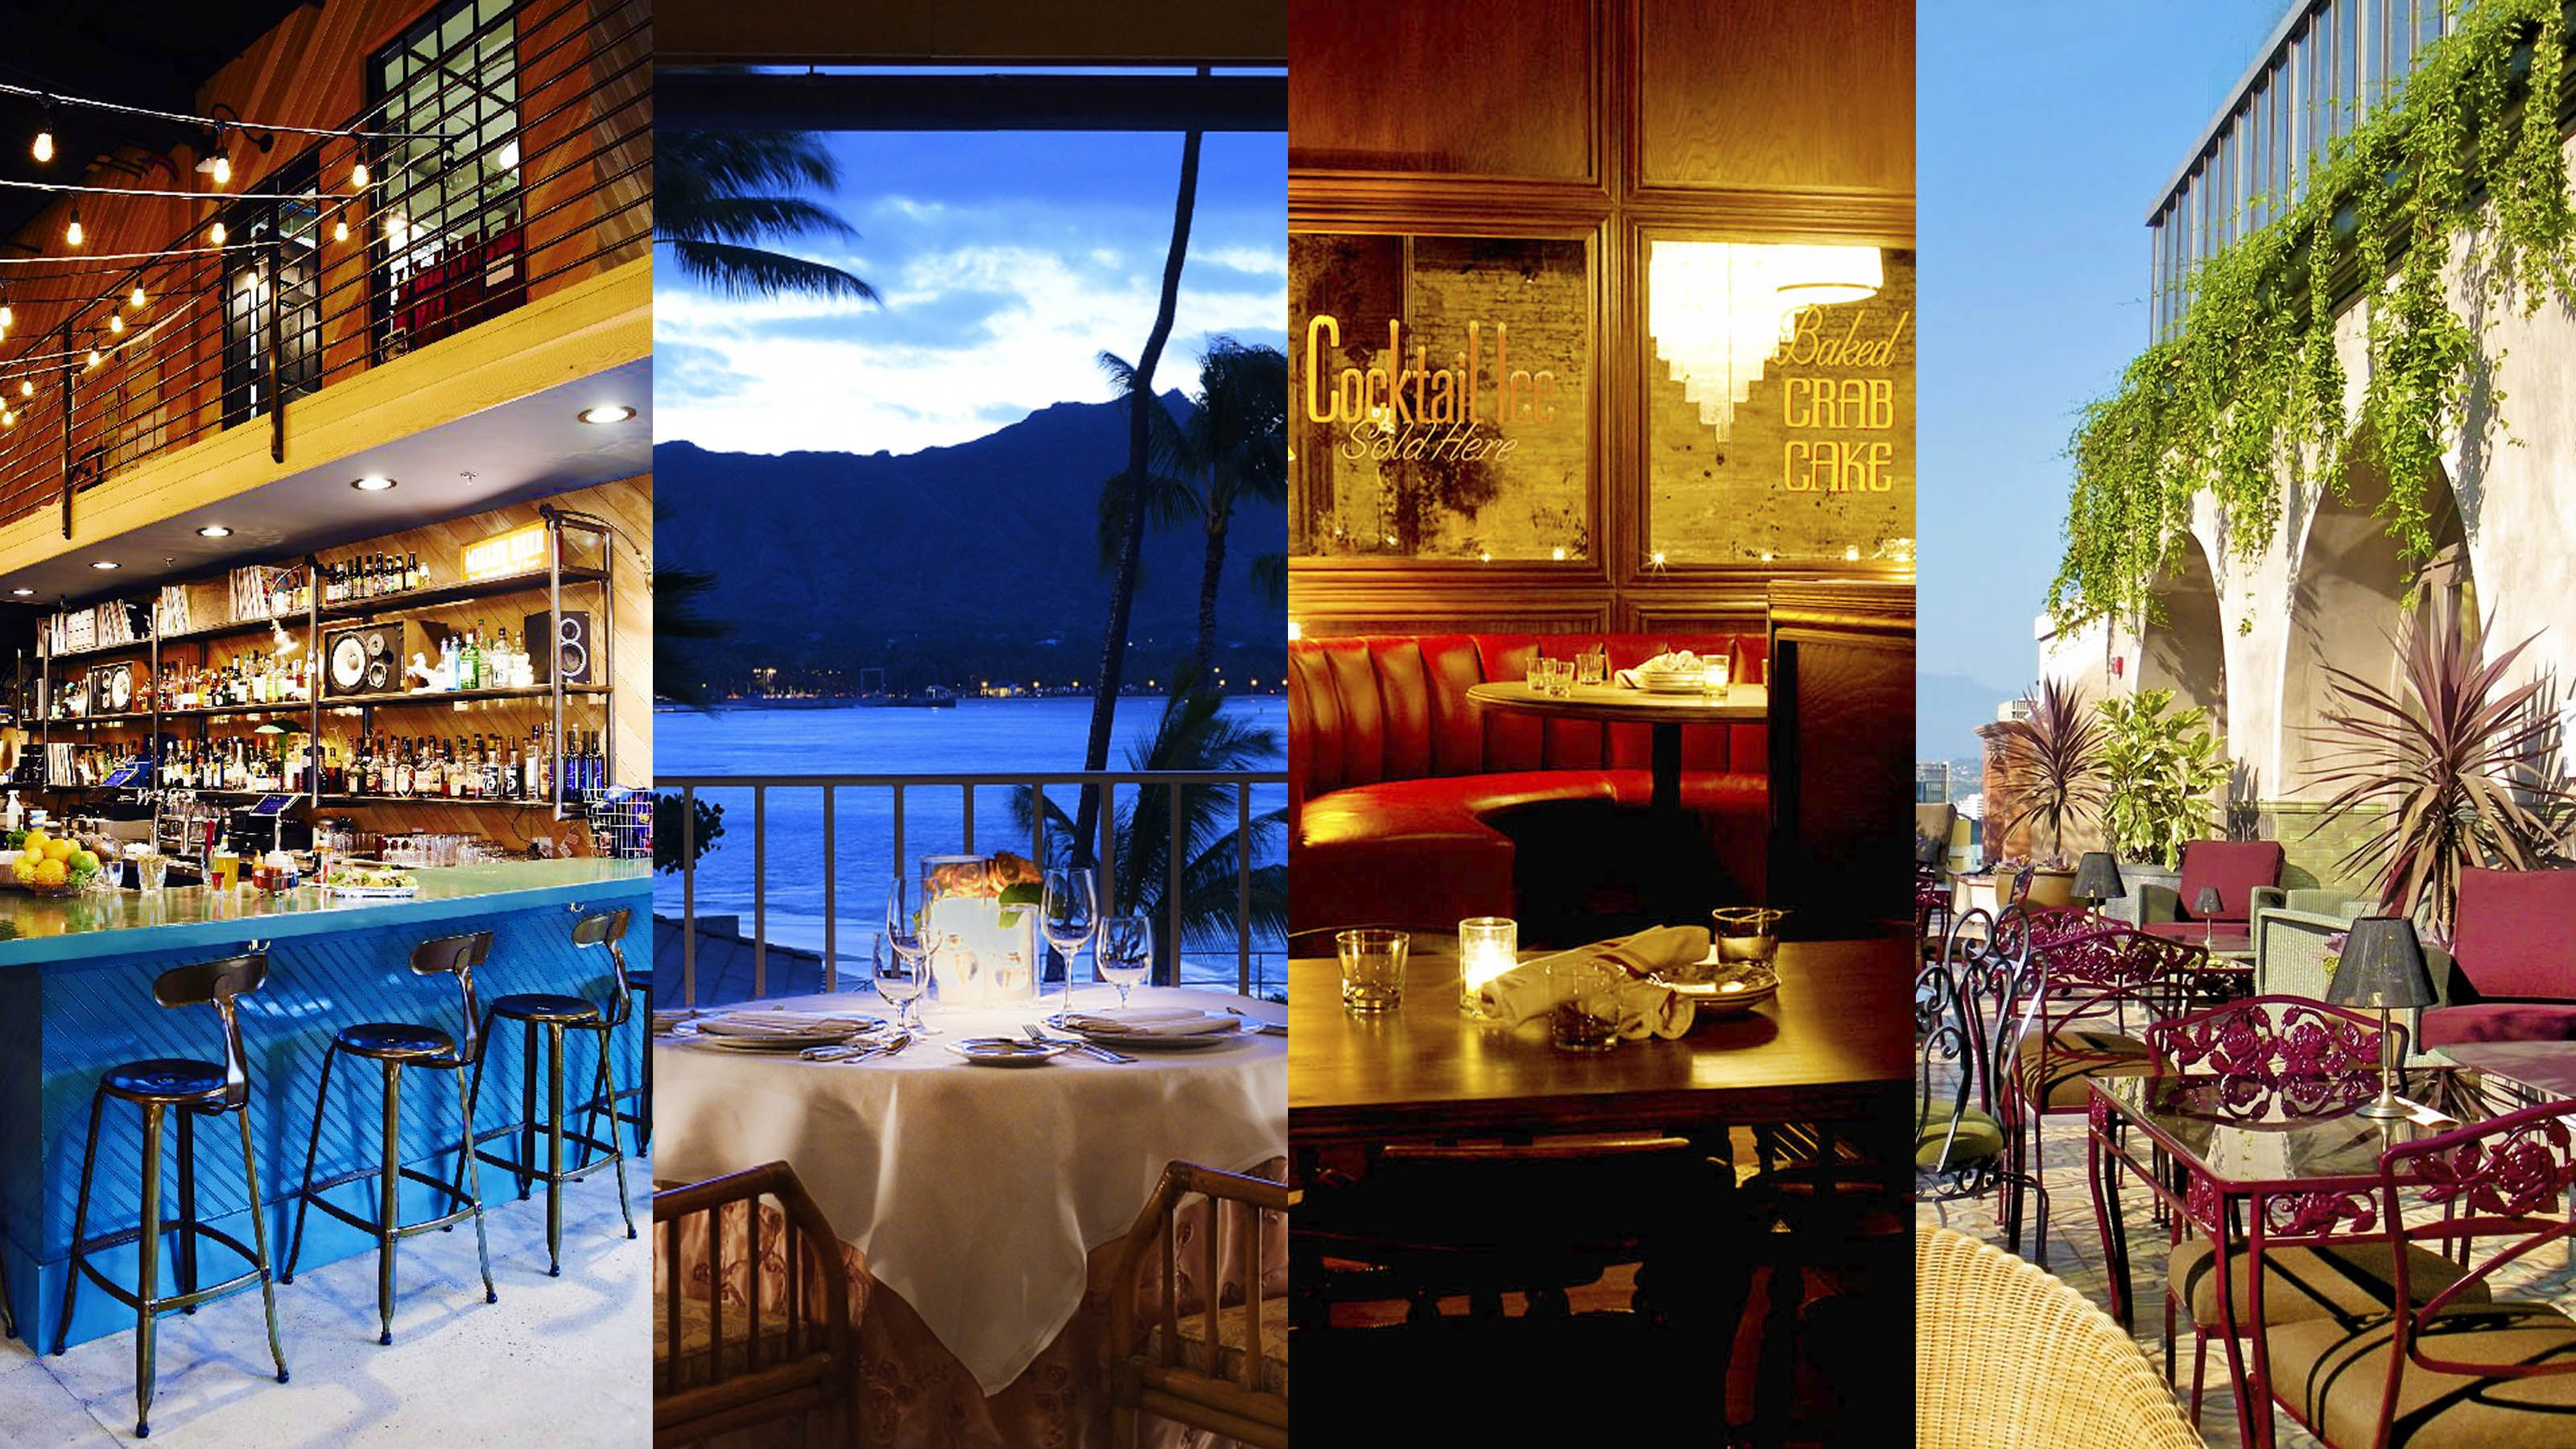 12 Most Romantic Restaurants in America for a Dinner Date Night Out